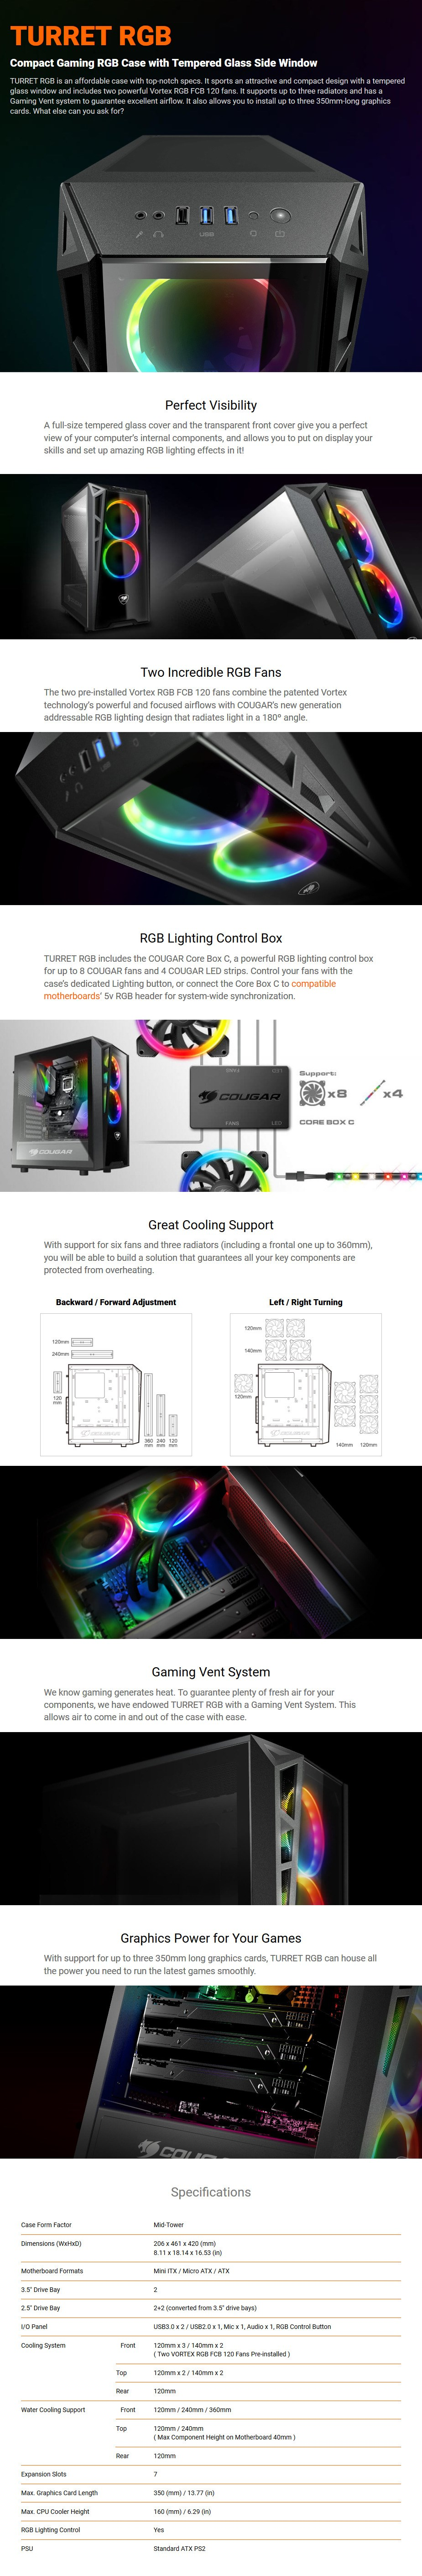 Cougar Turret RGB Tempered Glass Mid-Tower ATX Case - Desktop Overview